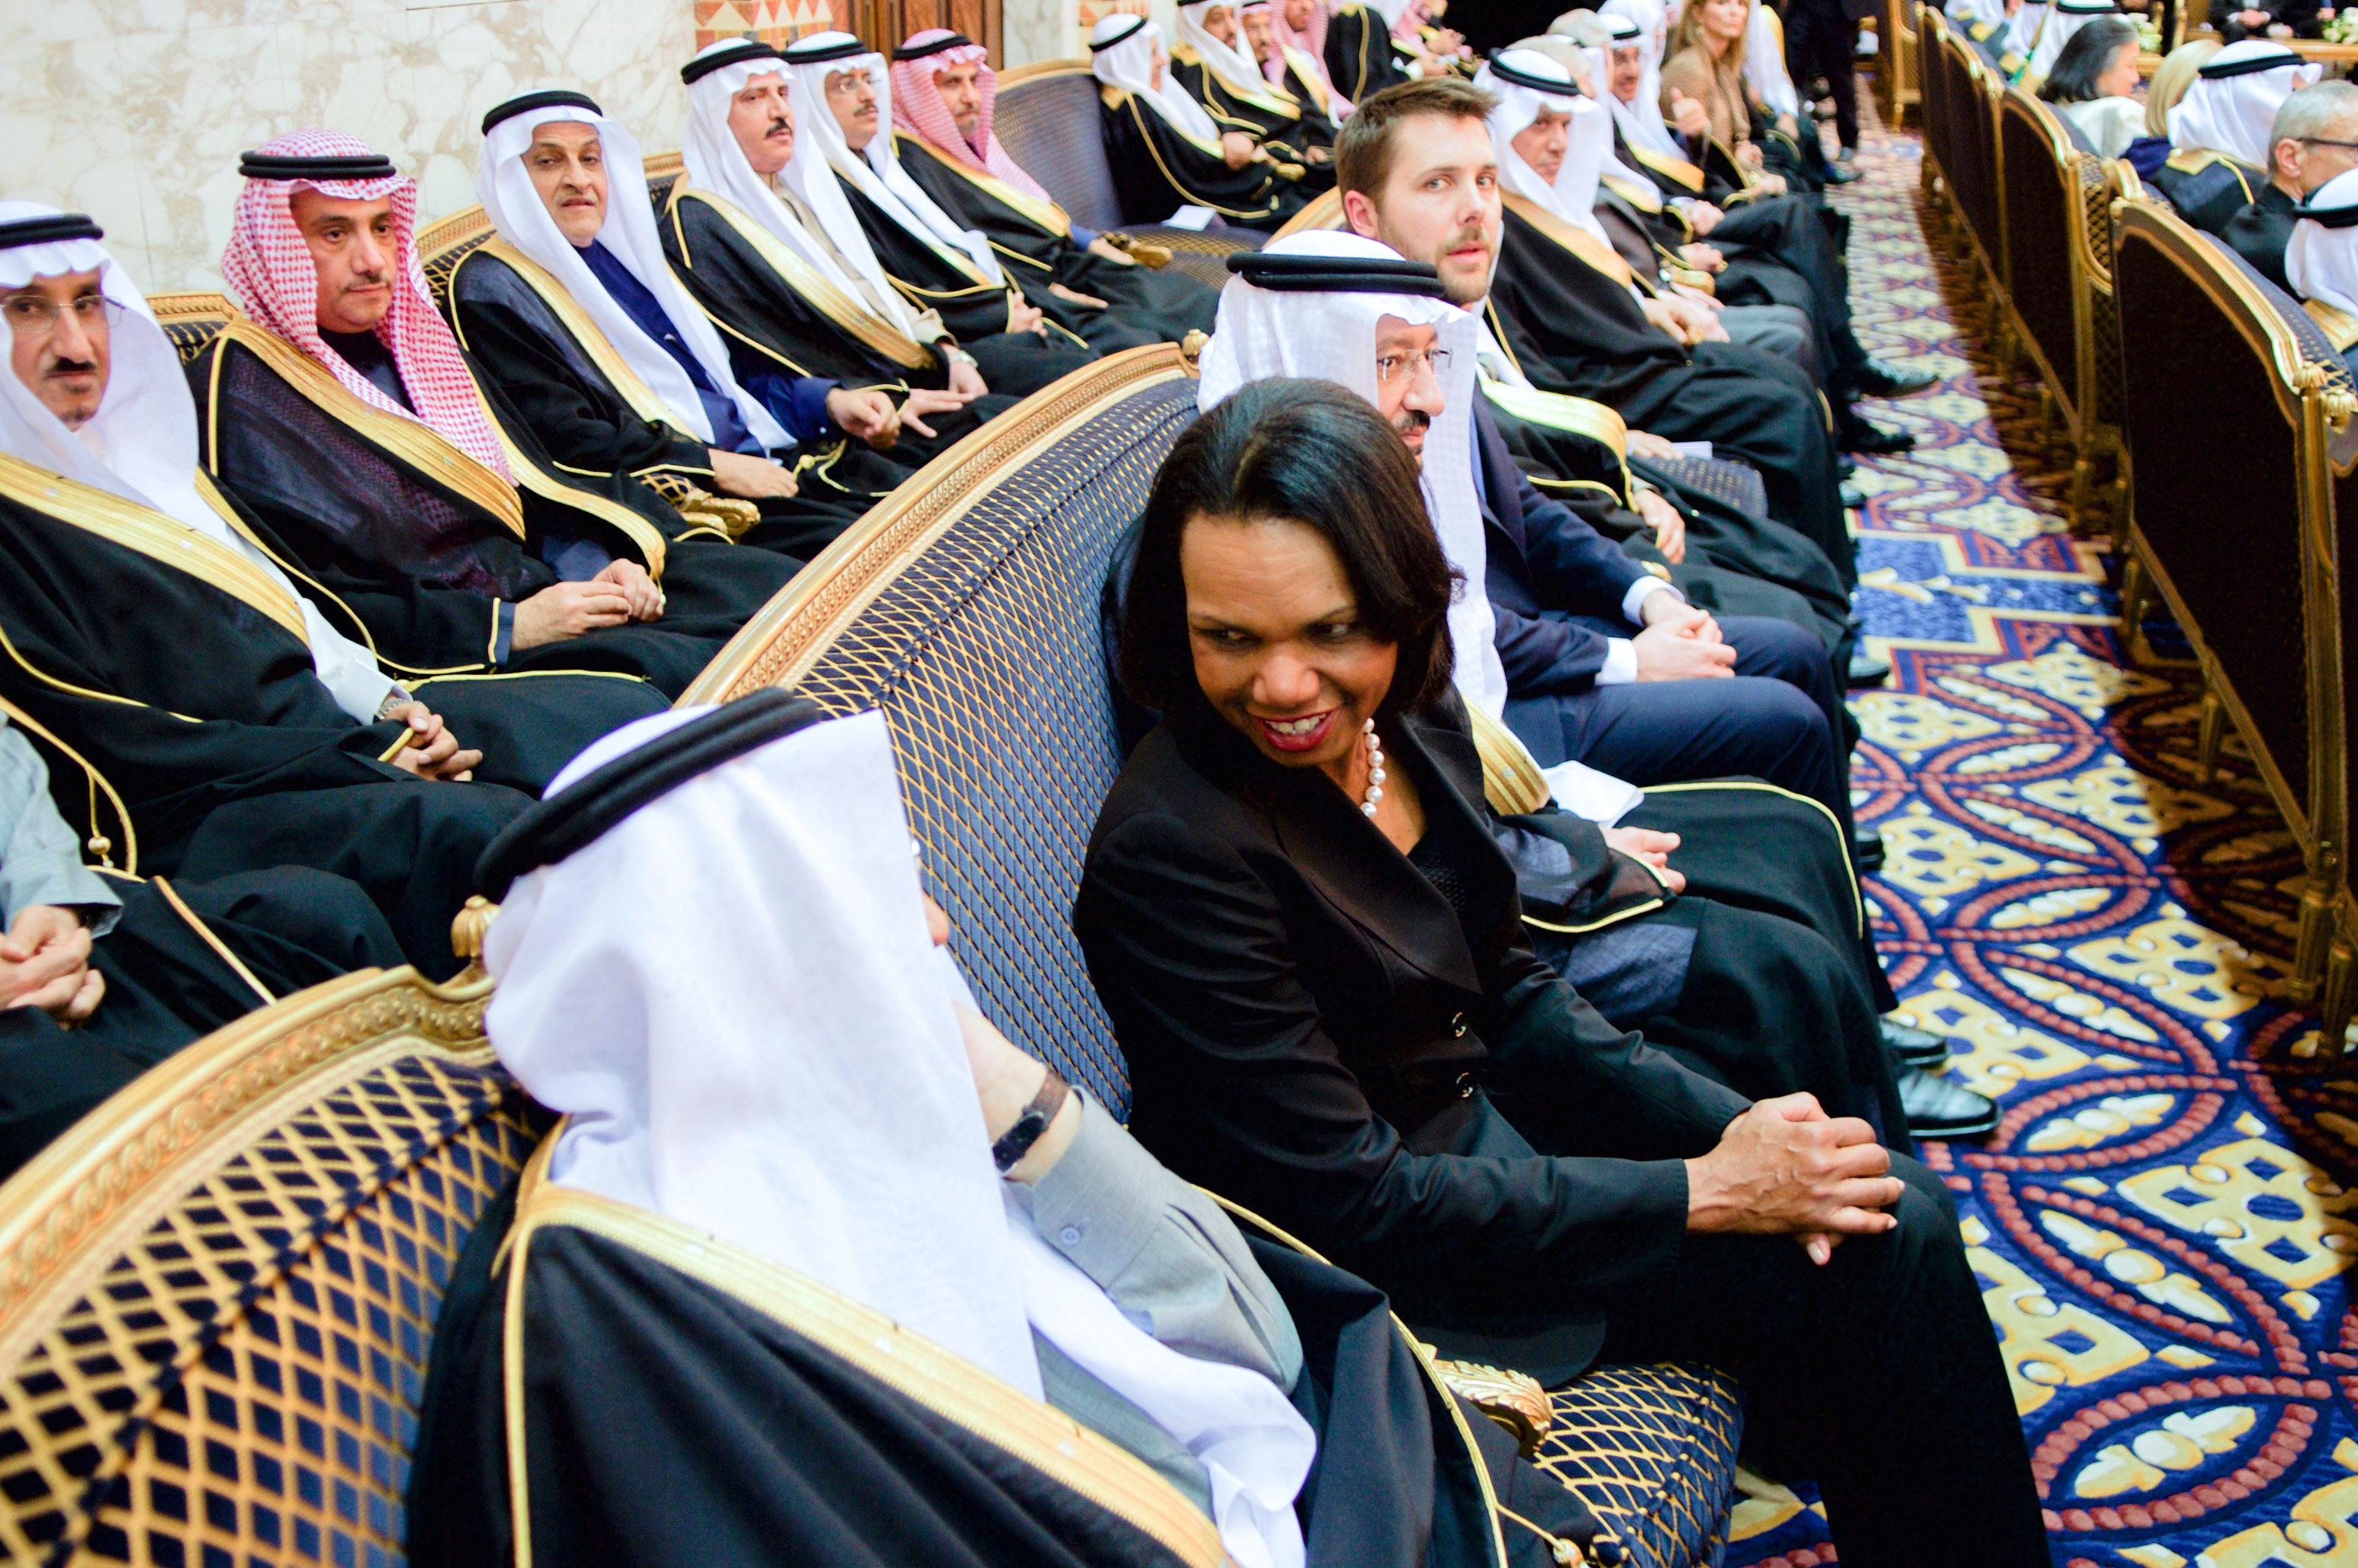 Former_Secretary_Rice_Chats_With_a_Member_of_the_Saudi_Royal_Family